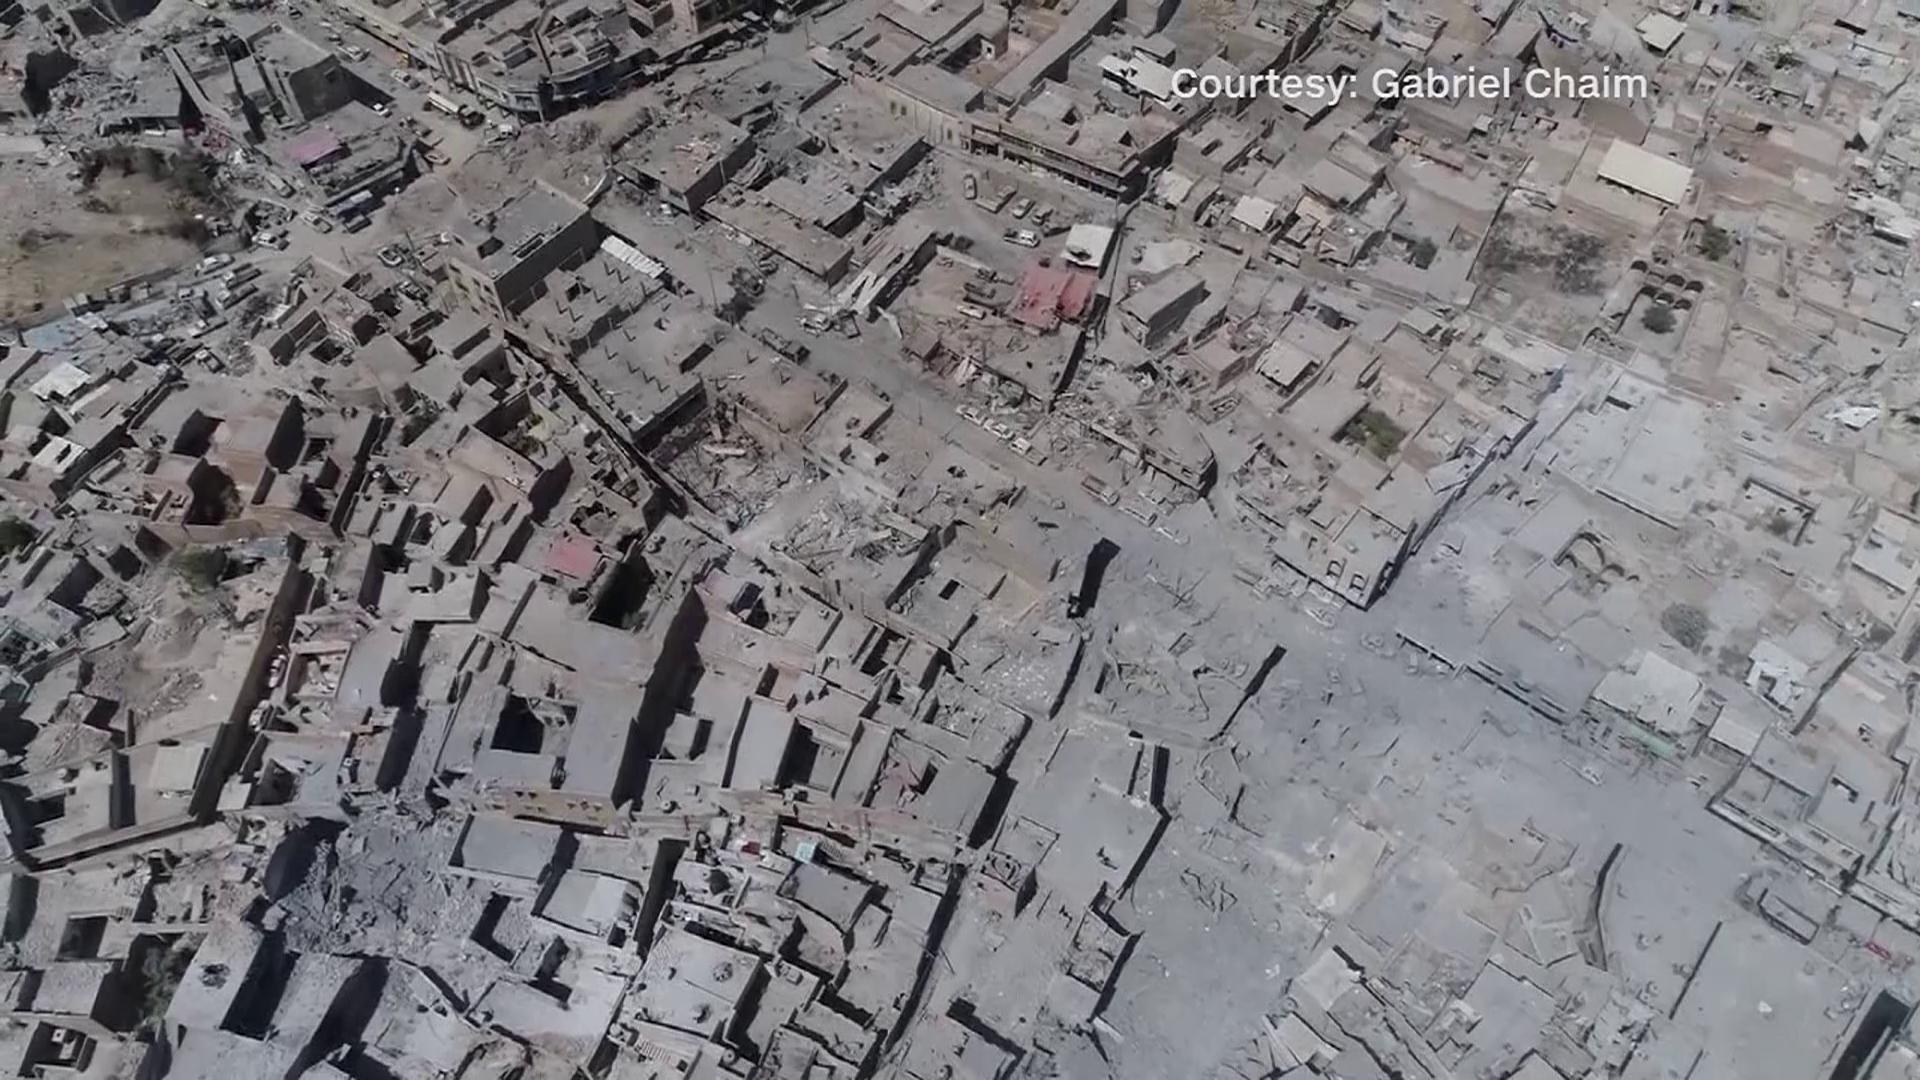 BHDN_IN-91MO_IRAQ_ DRONE FOOTAGE SHOWS DESTRUCTION IN MOSUL_CNNA-ST1-100000000412ddc5_174_0Thumbnail